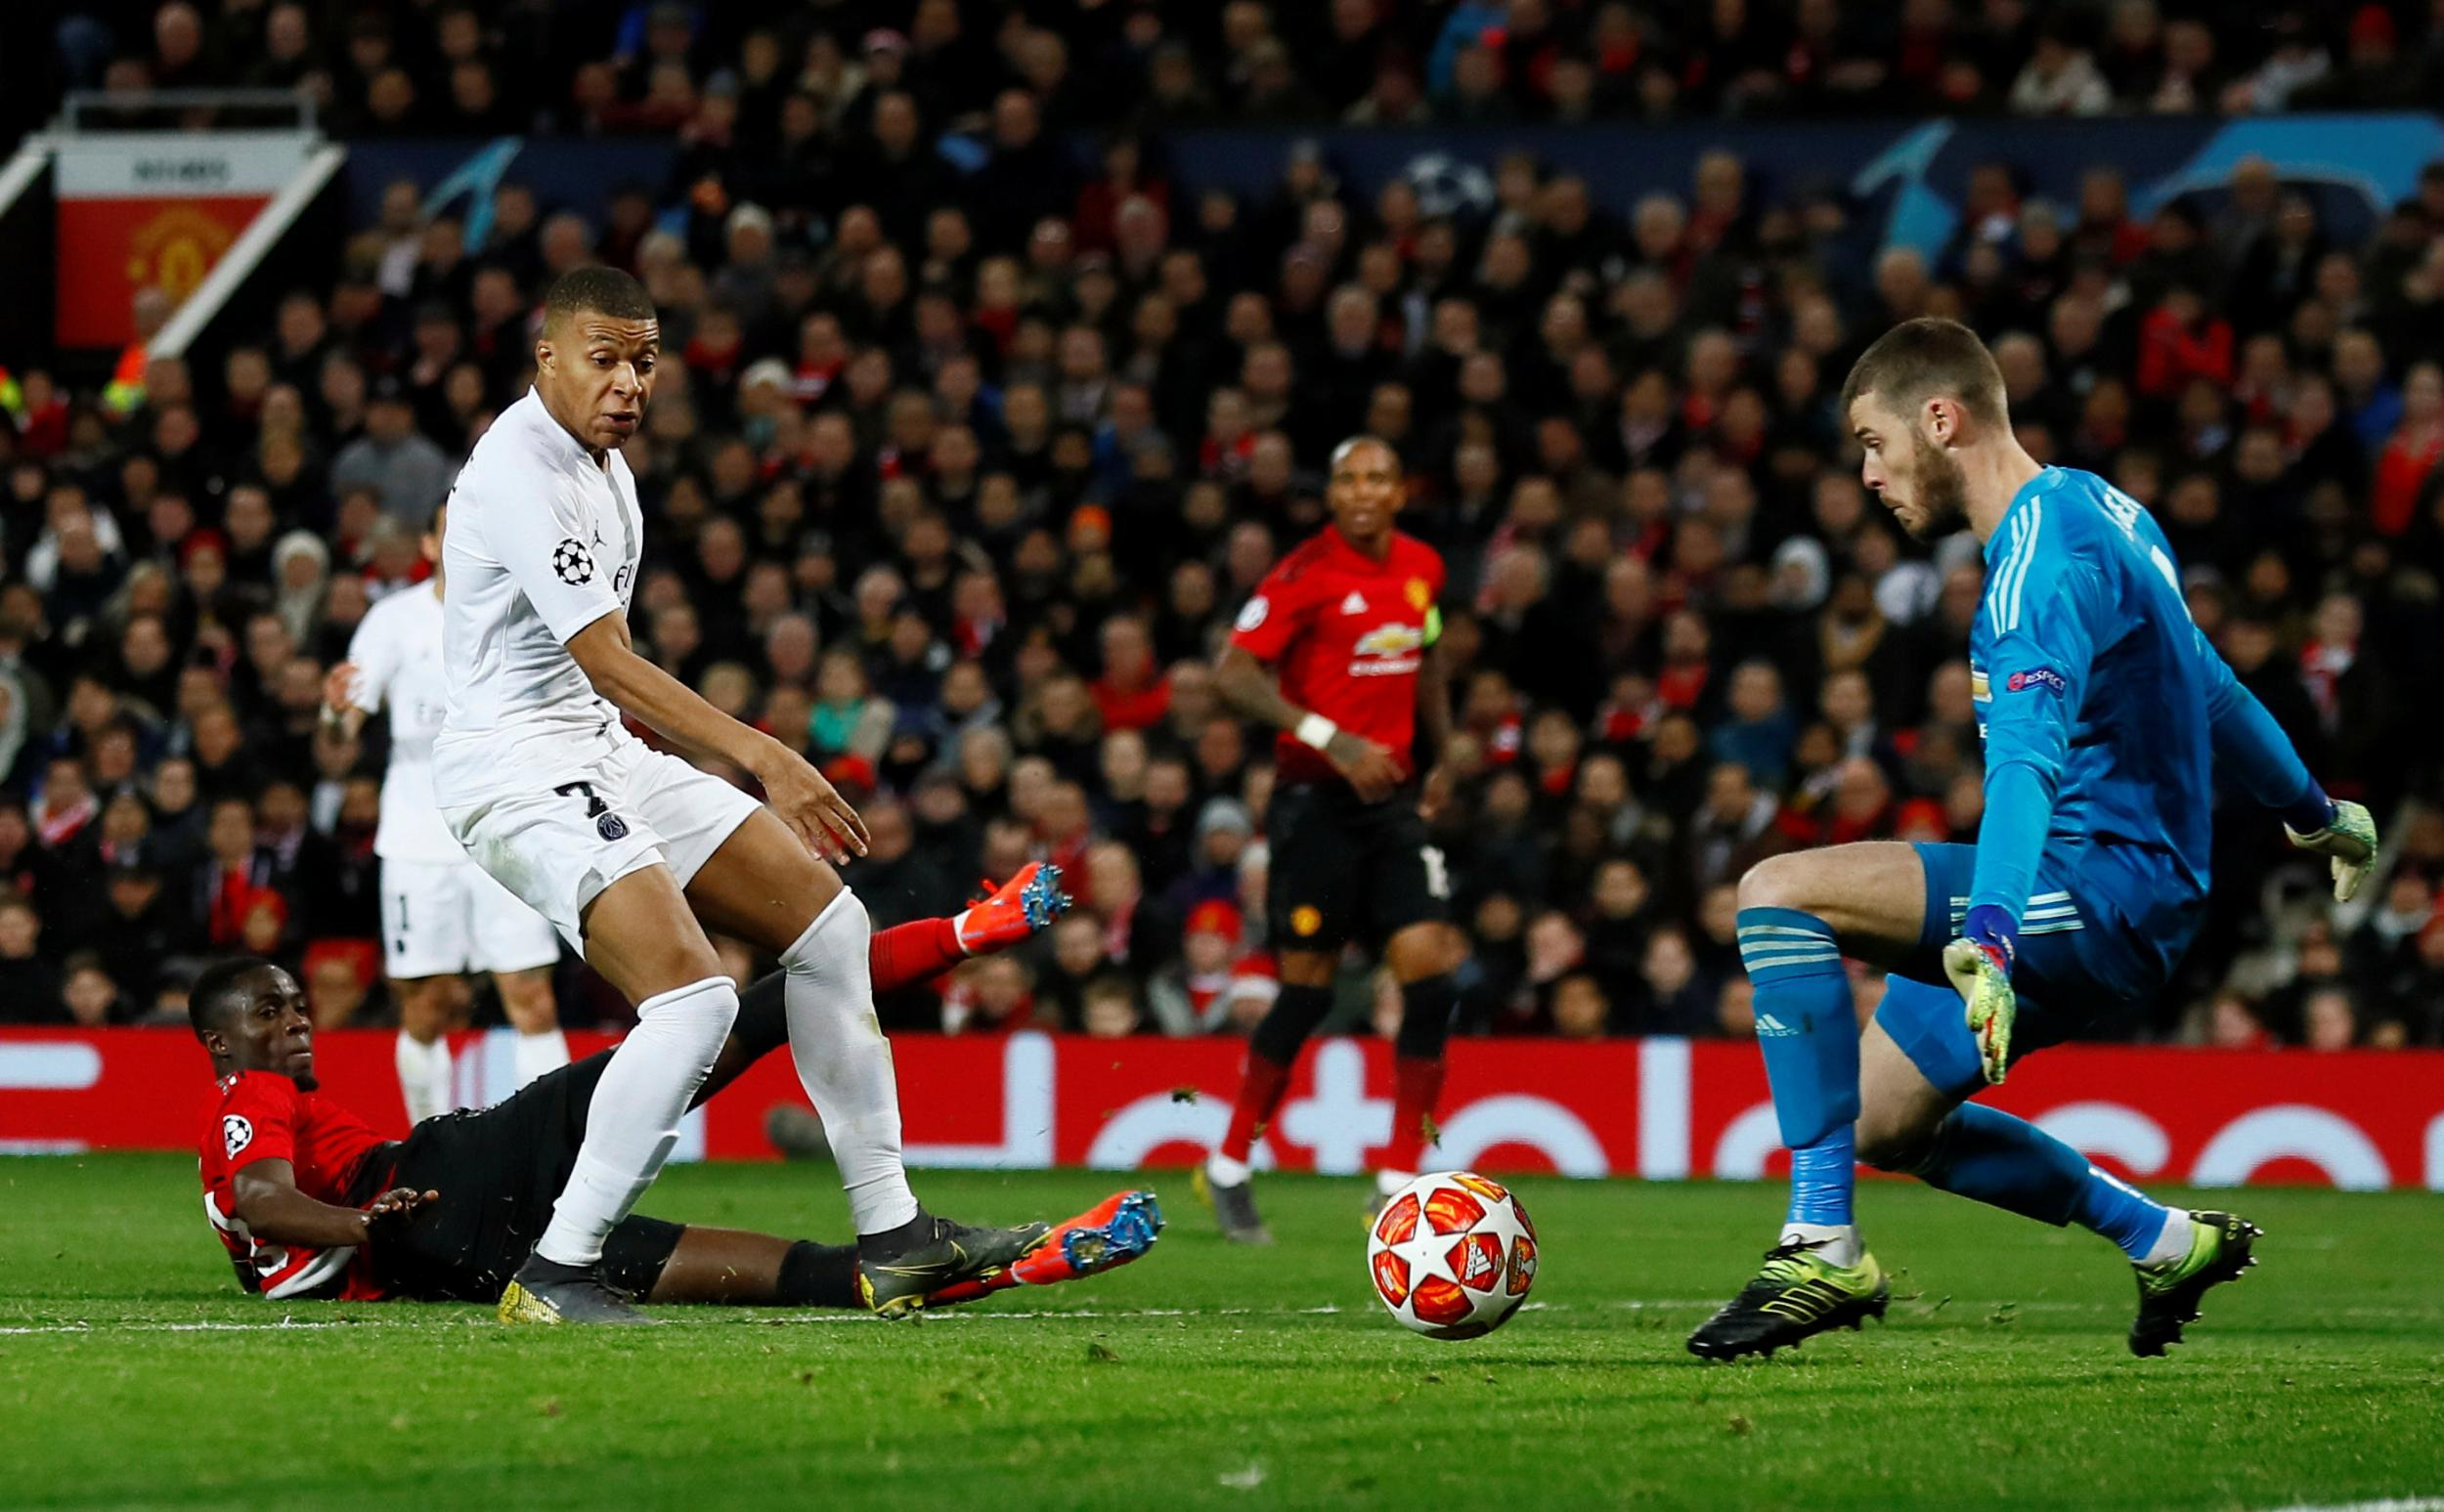 PSG secure a comfortable 2-0 win at Old Trafford to hand Ole's first defeat  as United boss